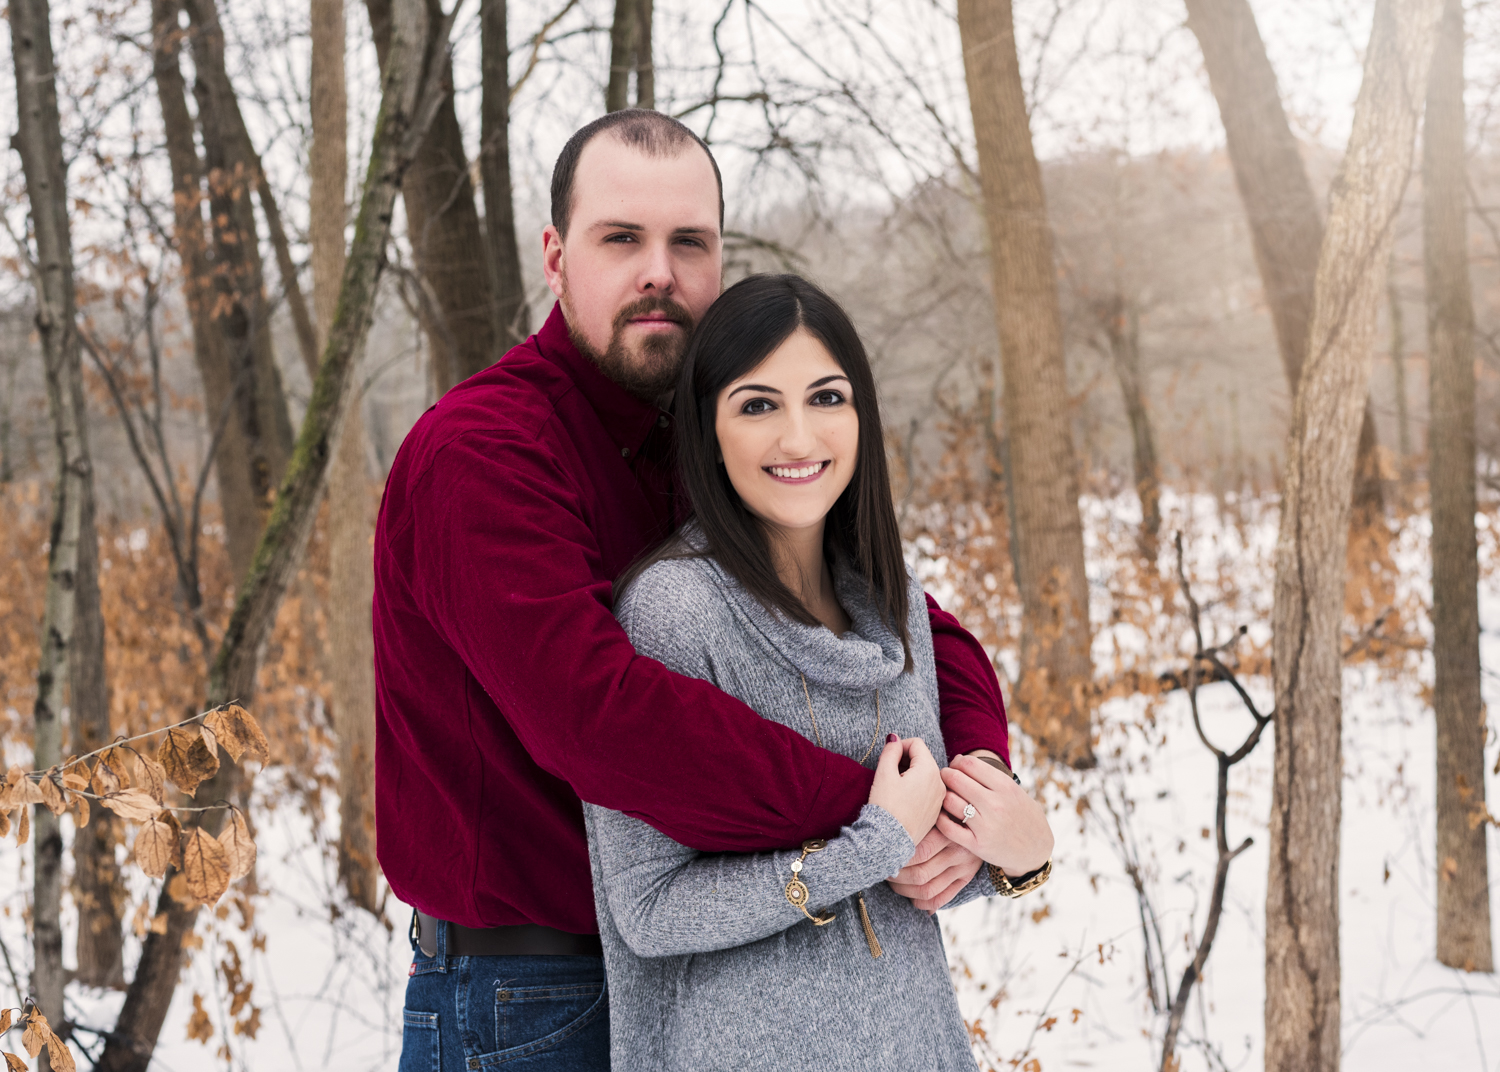 Morgan and Murray's Engagement Location: Captain Daniel Wright Woods